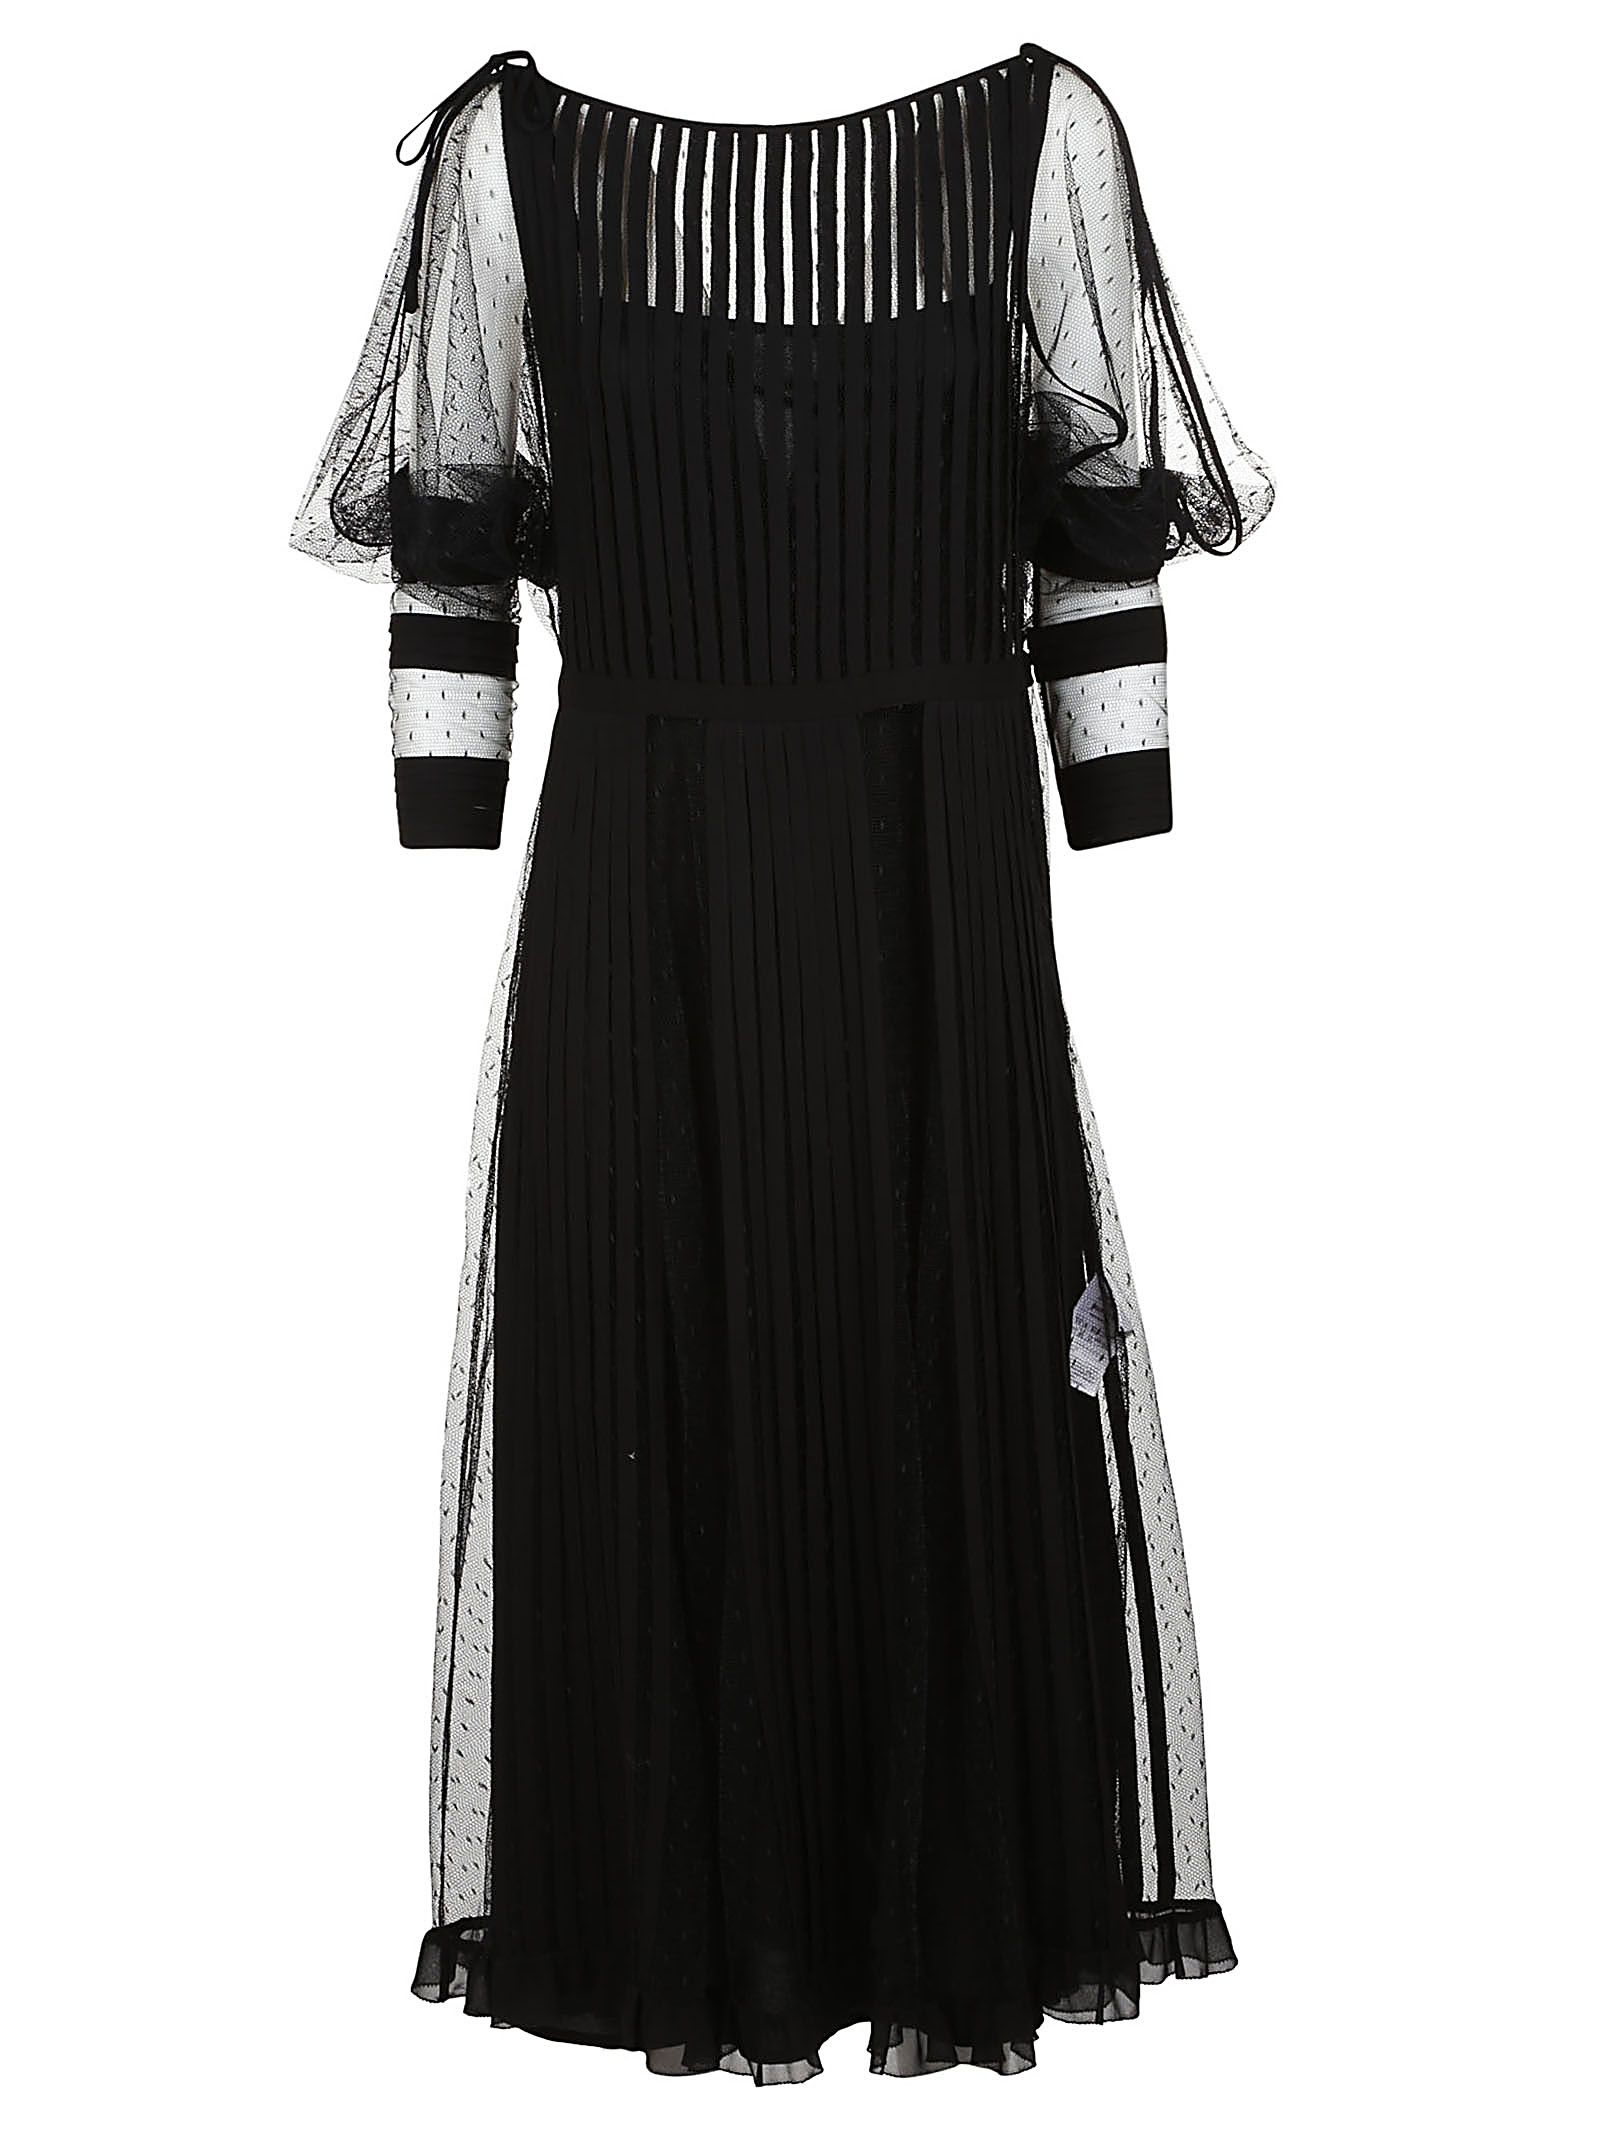 tulle panel dress - Black Red Valentino With Mastercard Cheap Price In China Cheap Price 100% Original Cheap Price Discount Visa Payment Sale Footlocker qOHzt